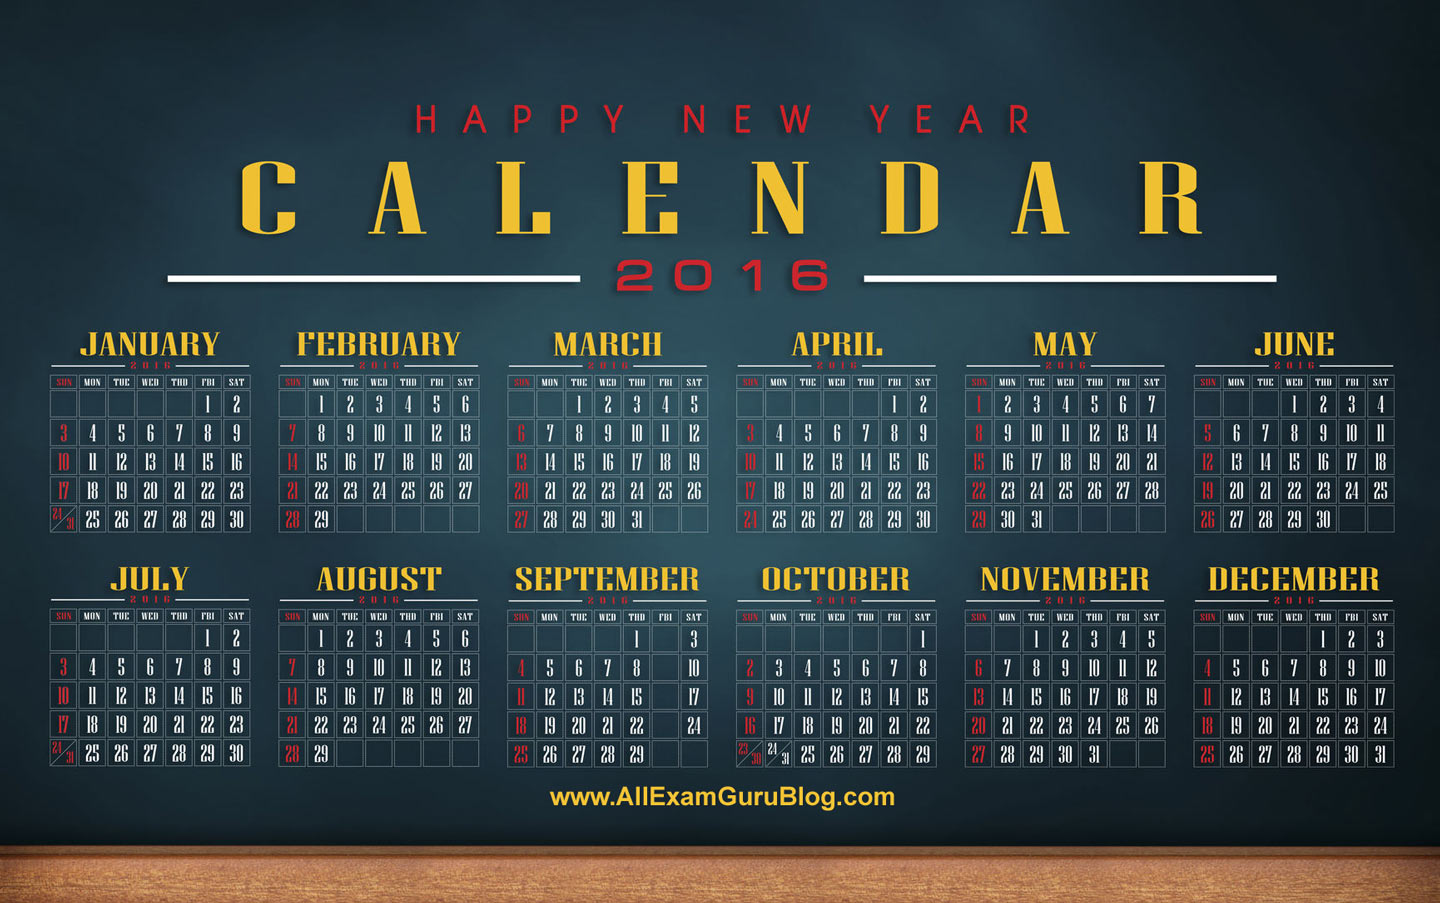 Calendar Wallpaper For Pc Desktop : Calendar desktop wallpaper download